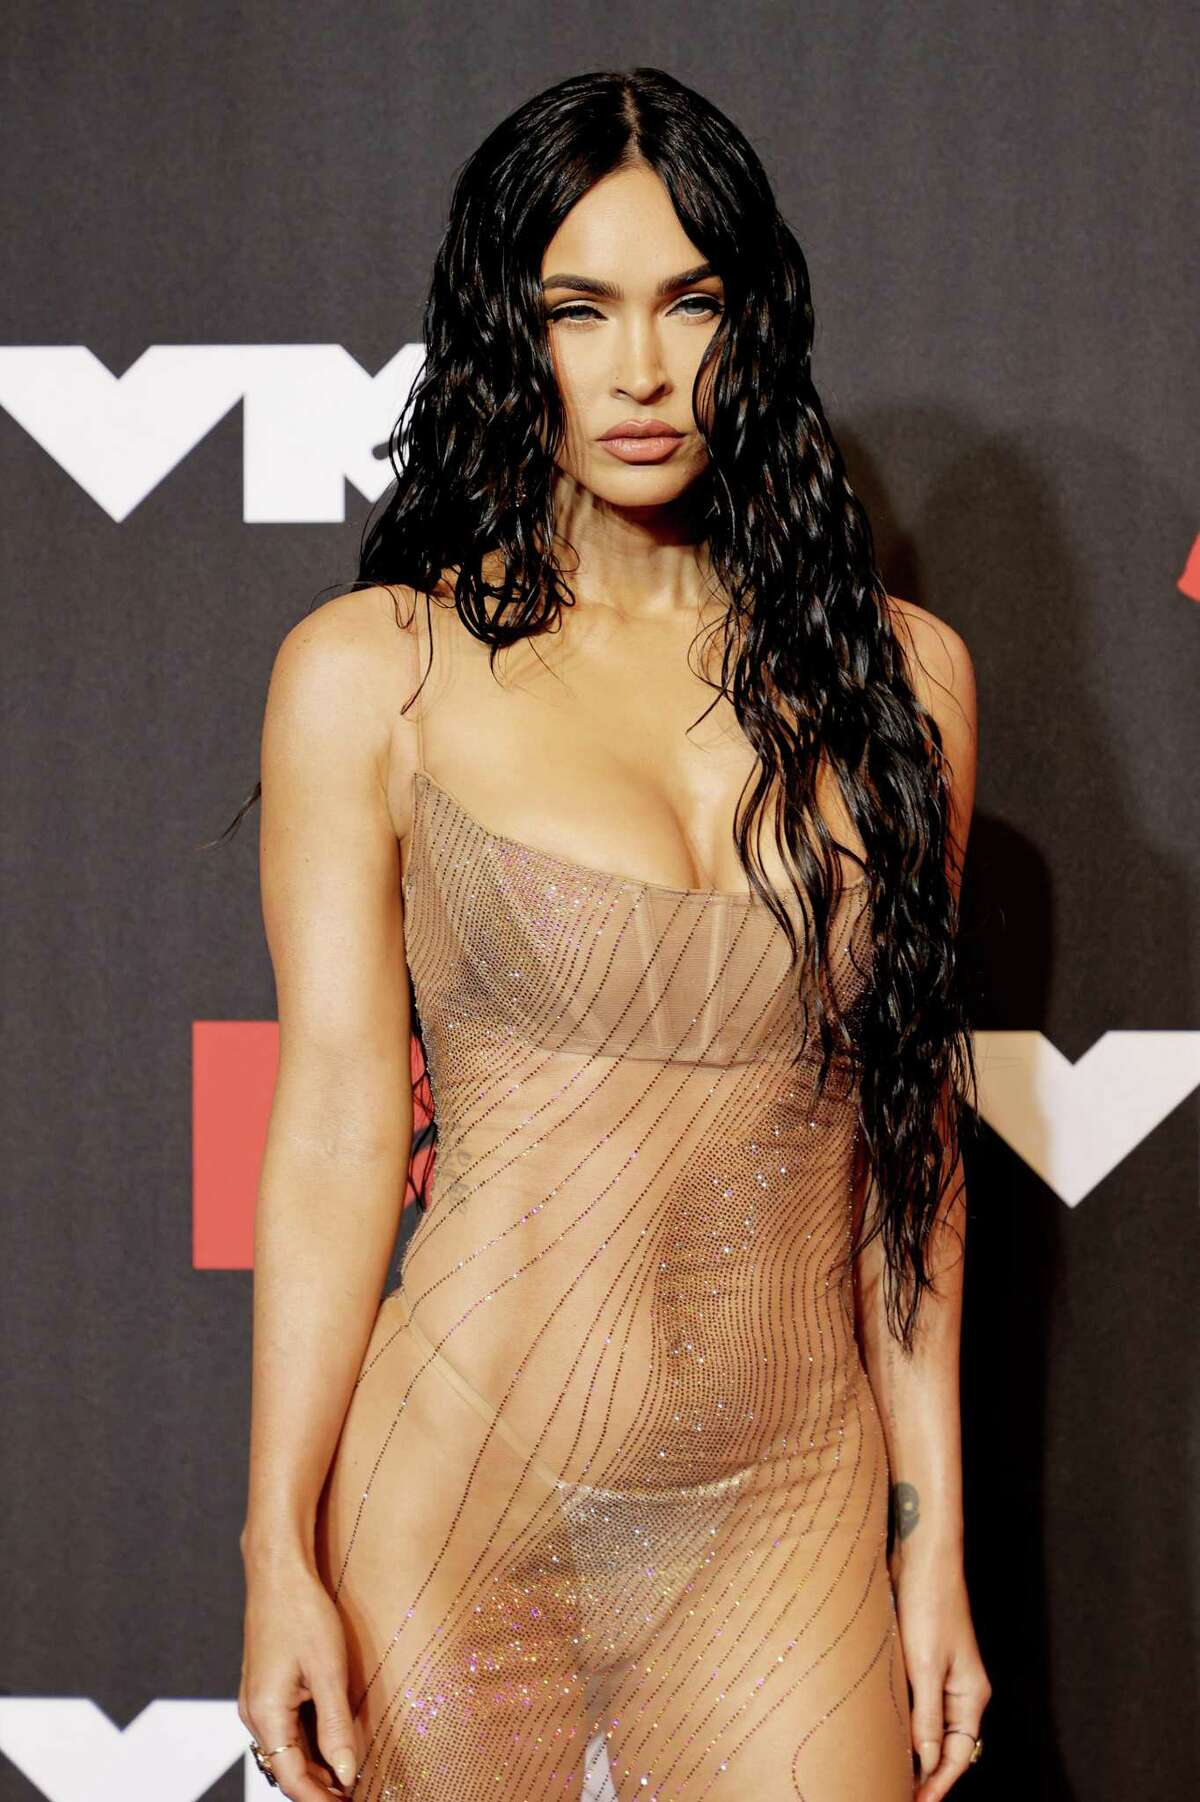 Megan Fox's naked dress attracted attention at the VMAs Sunday.